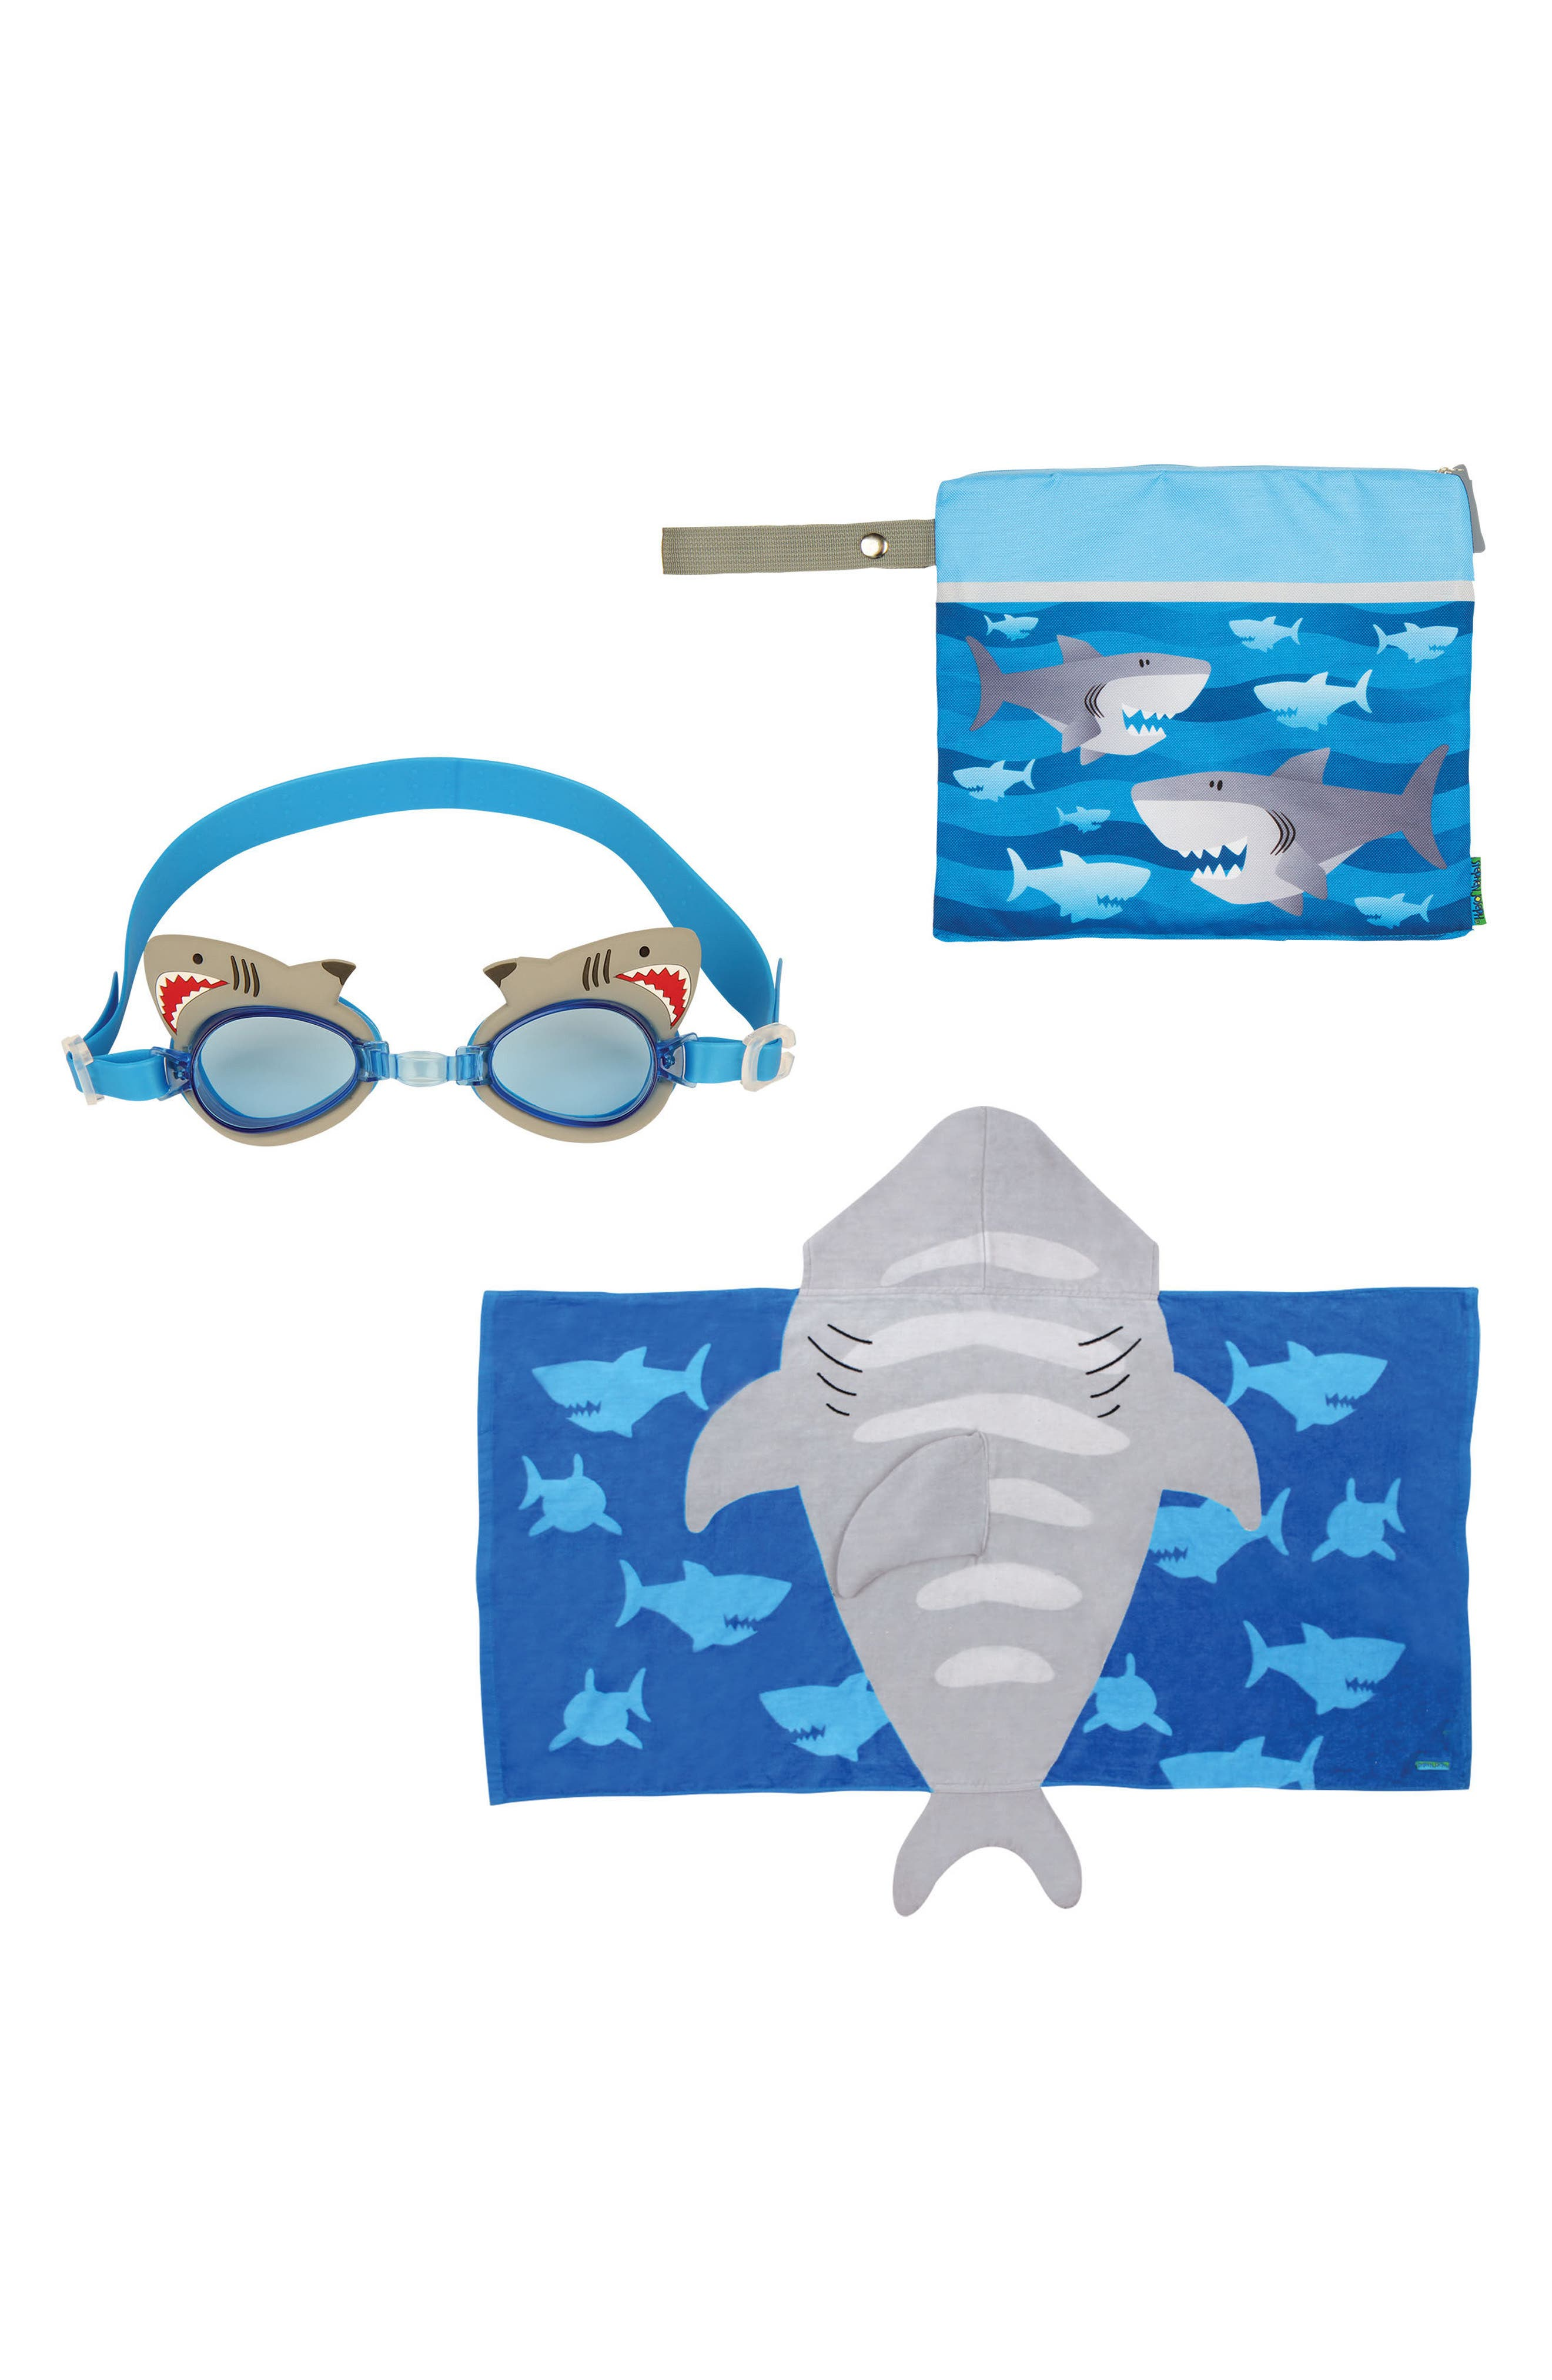 Stephen Joseph Wetdry Bag Hooded Towel  Goggles Size One Size  Blue